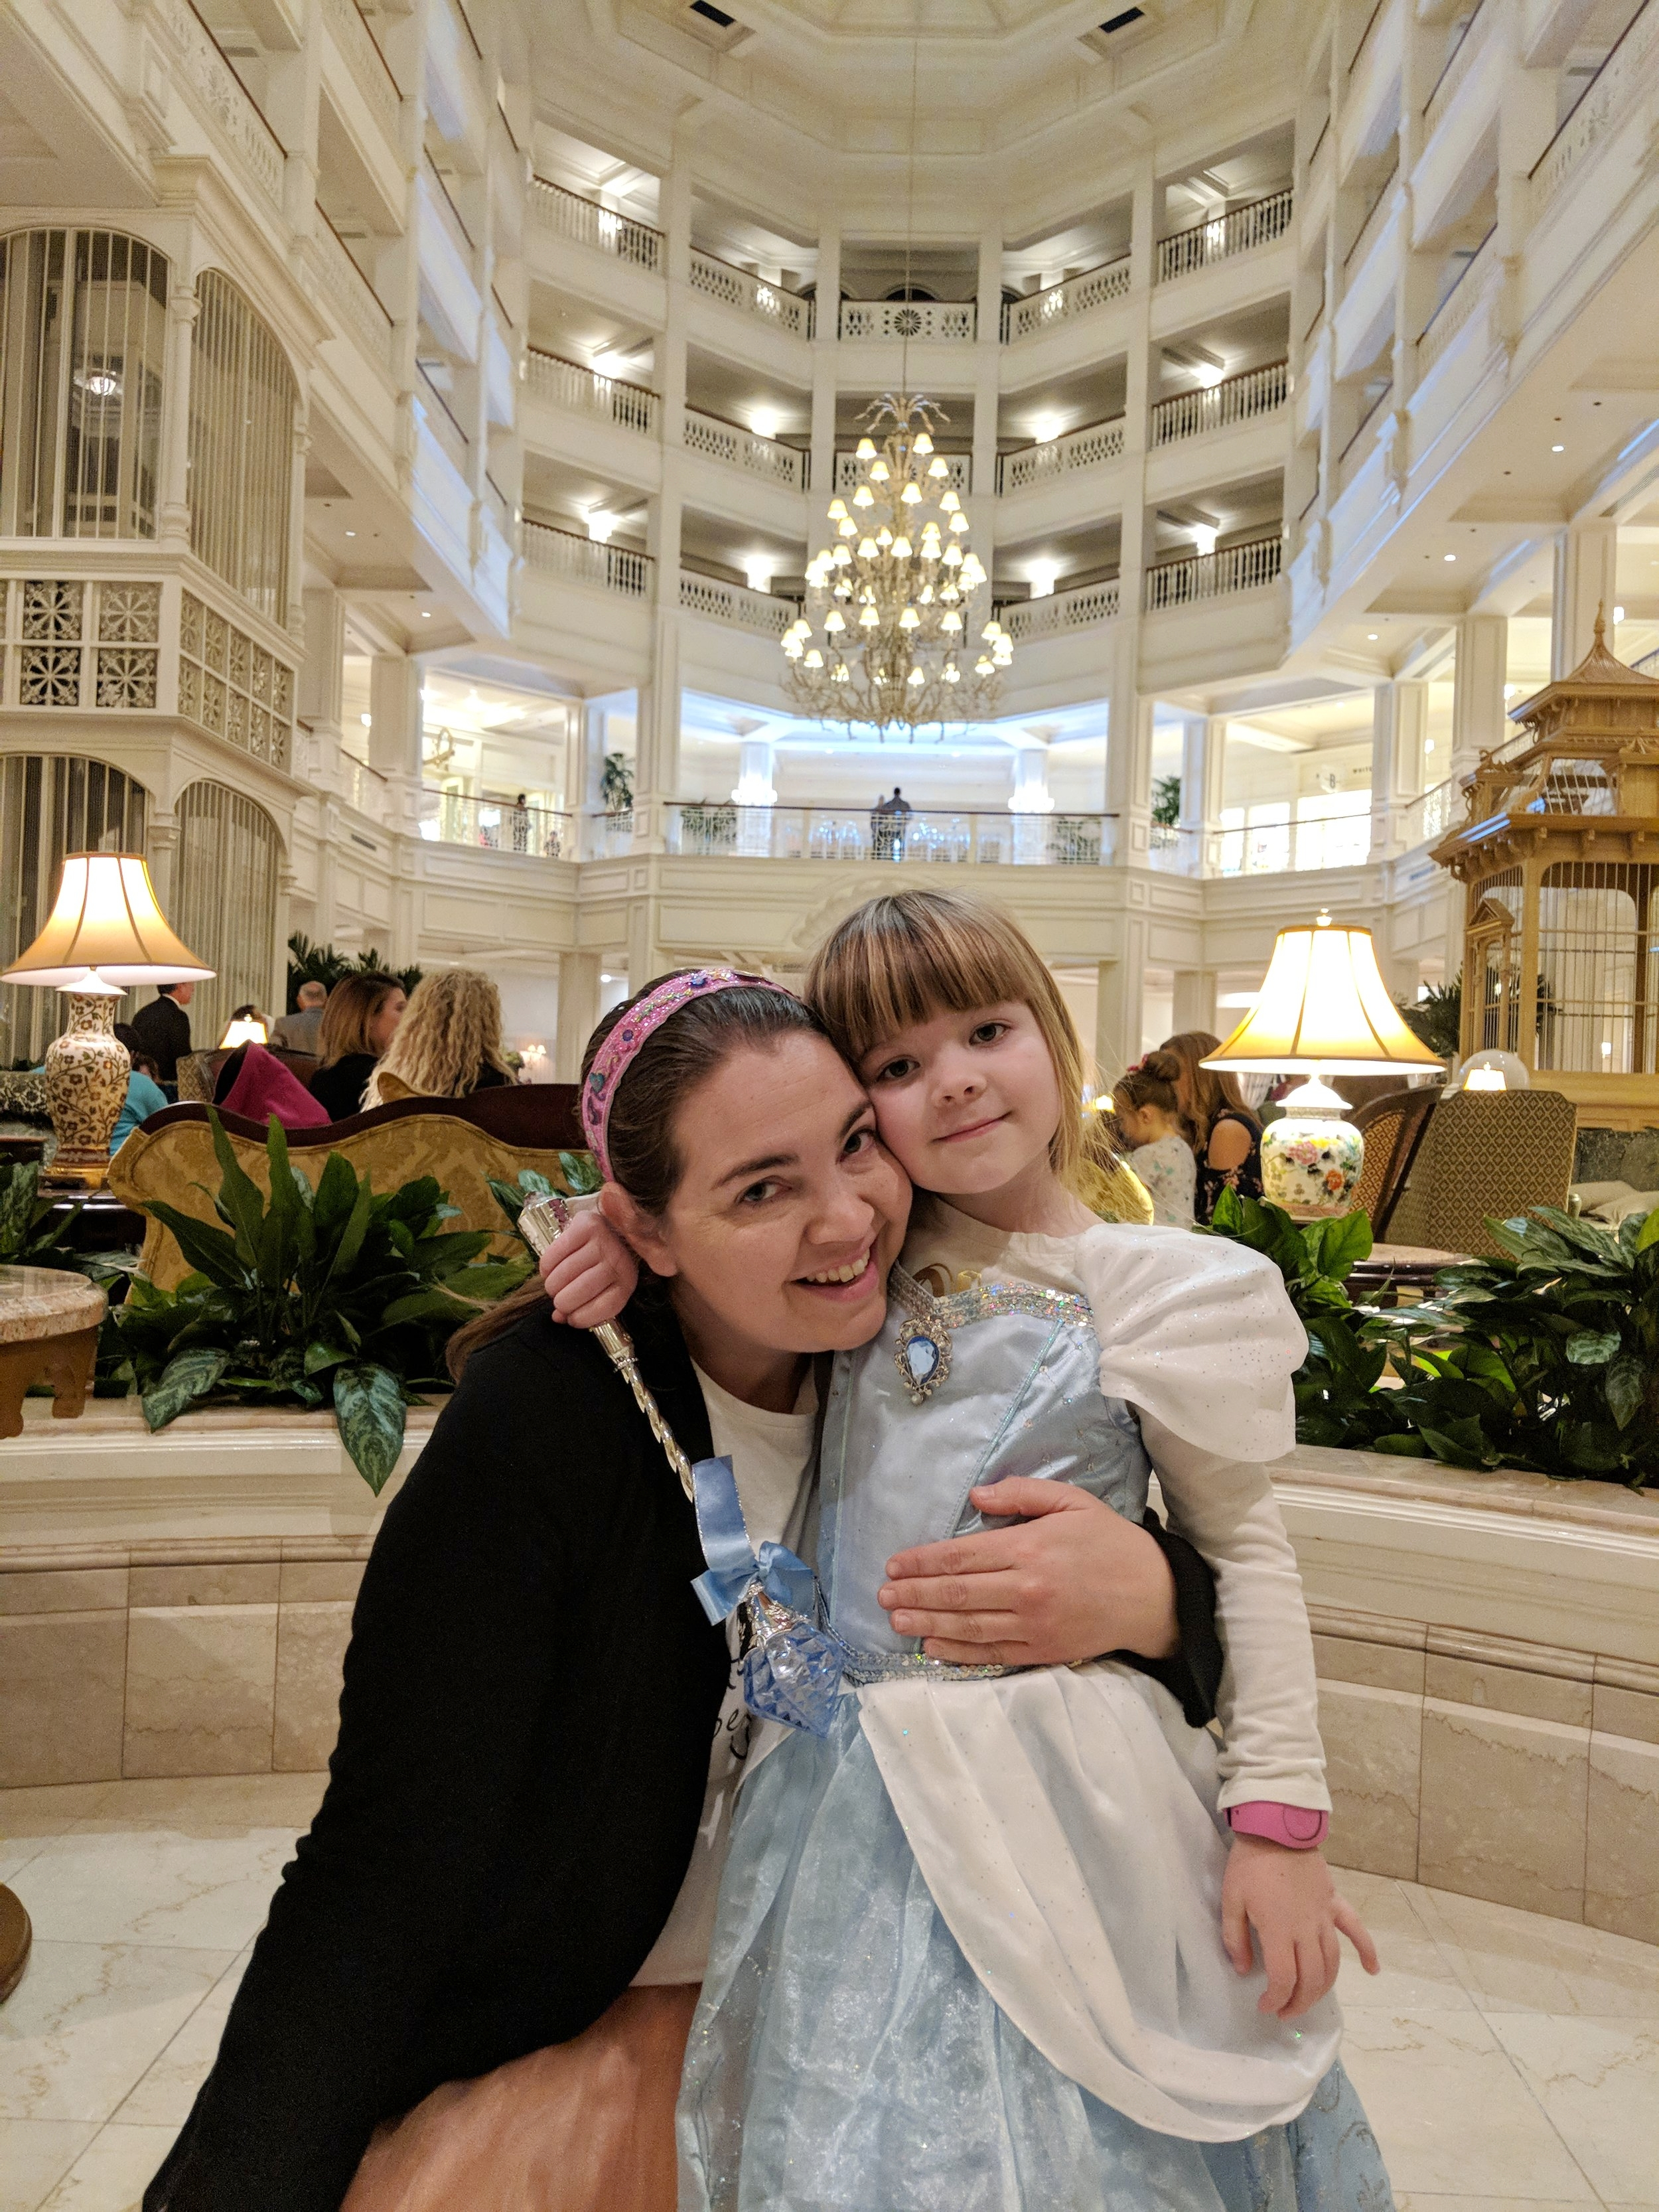 Photo of me and Annabelle in the Grand Floridian before our Princess Character Dining dinner at 1900 Park Fare.  We loved meeting Cinderella, Prince Charming, the Stepsisters and StepMother (note characters are different at this location at Breakfast and Lunch). Photo by Jon Harle (thanks love for this!)